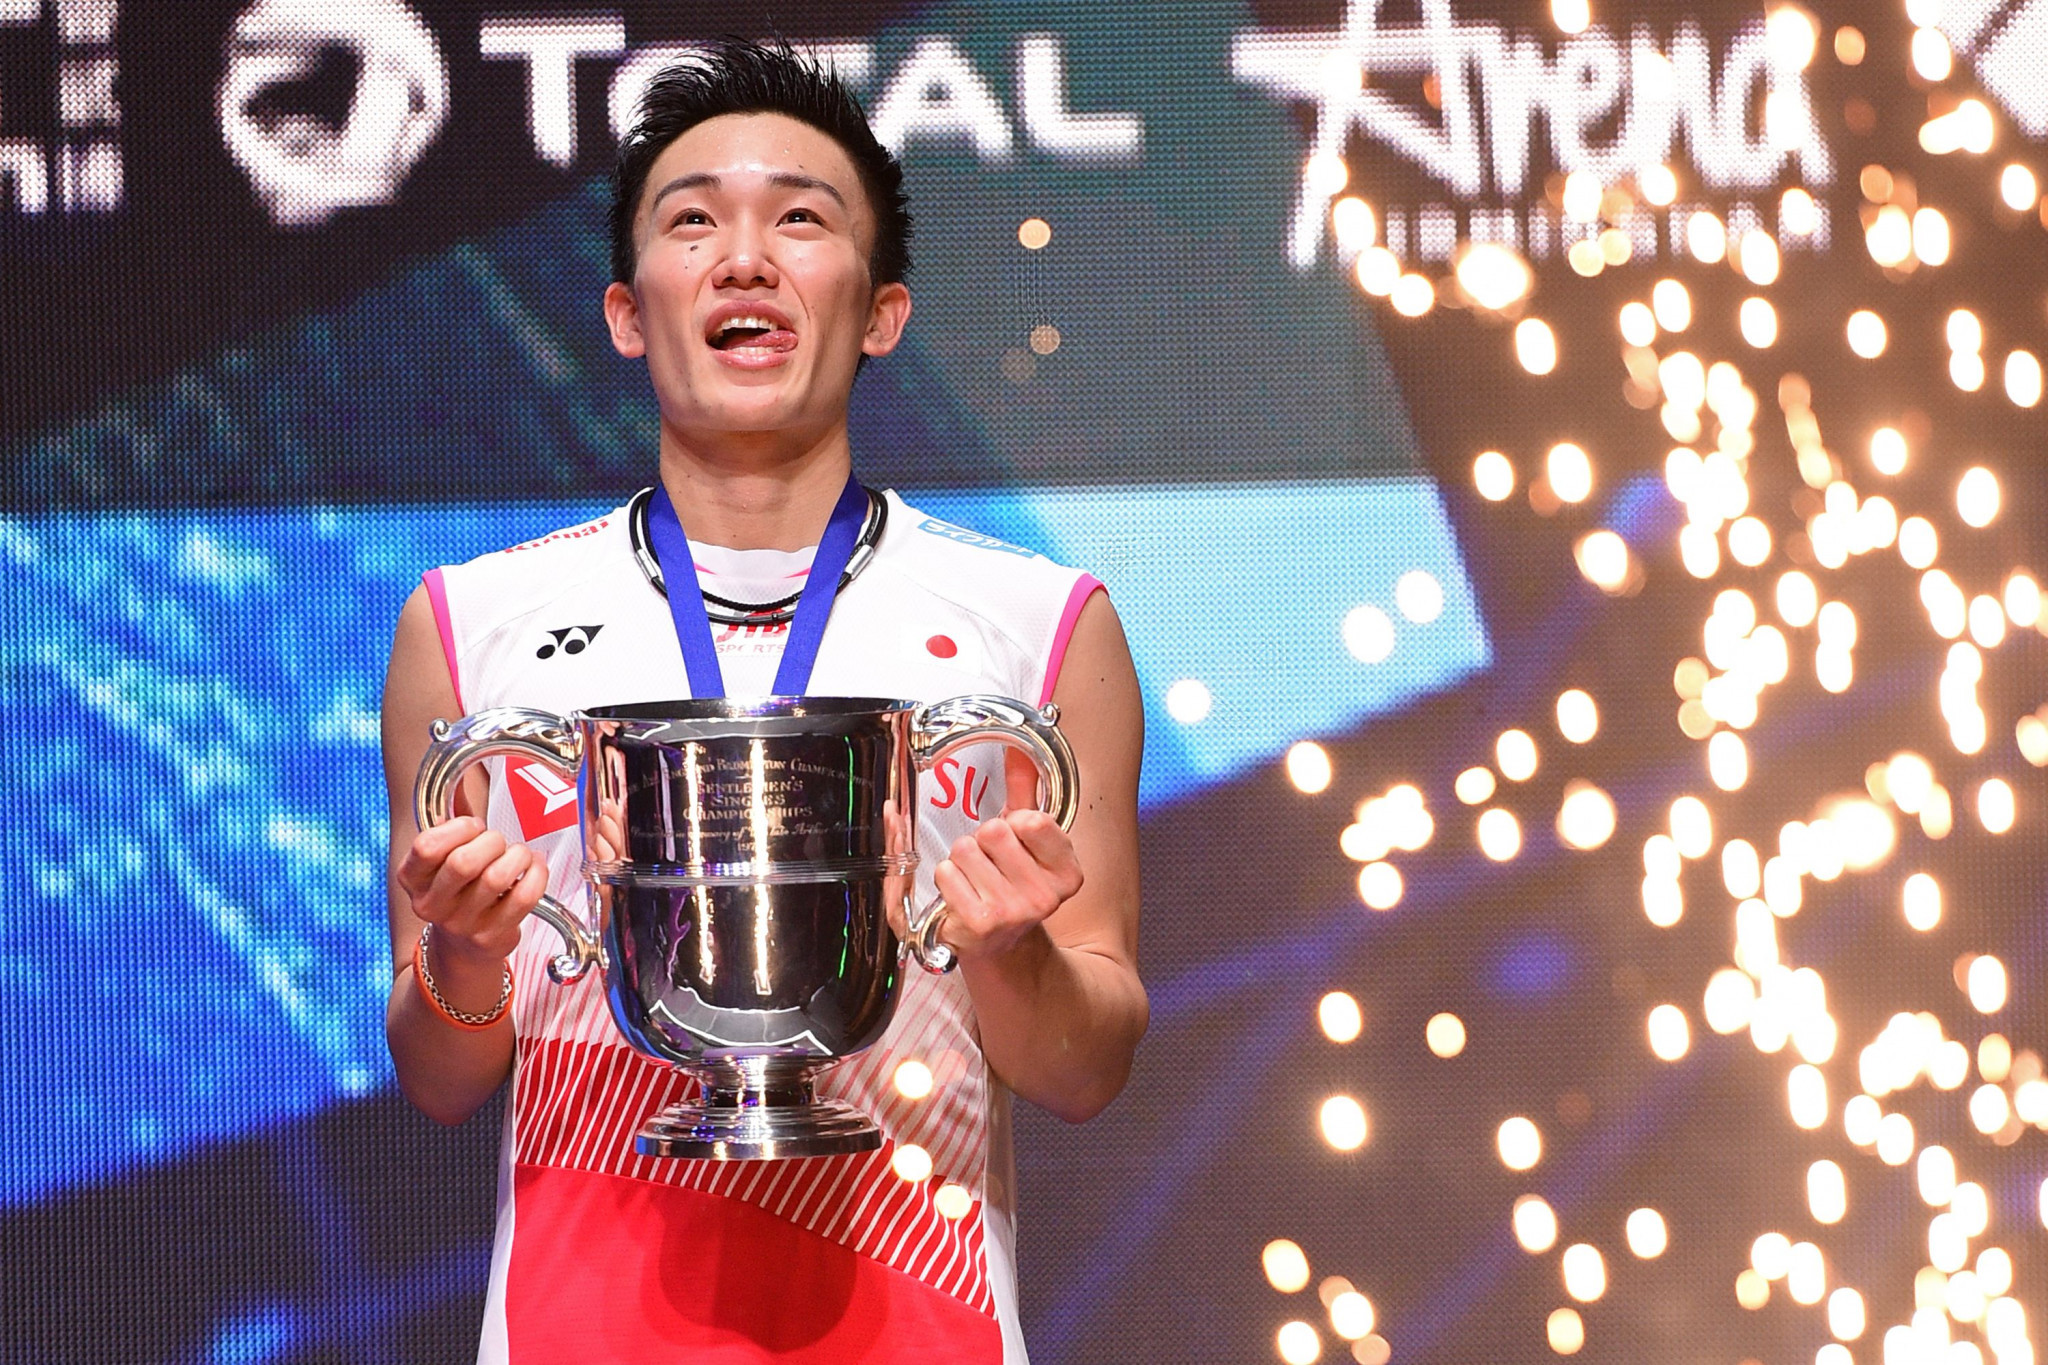 Japan's reigning world champion Kento Momota won a maiden All England Open Badminton Championships title ©Getty Images